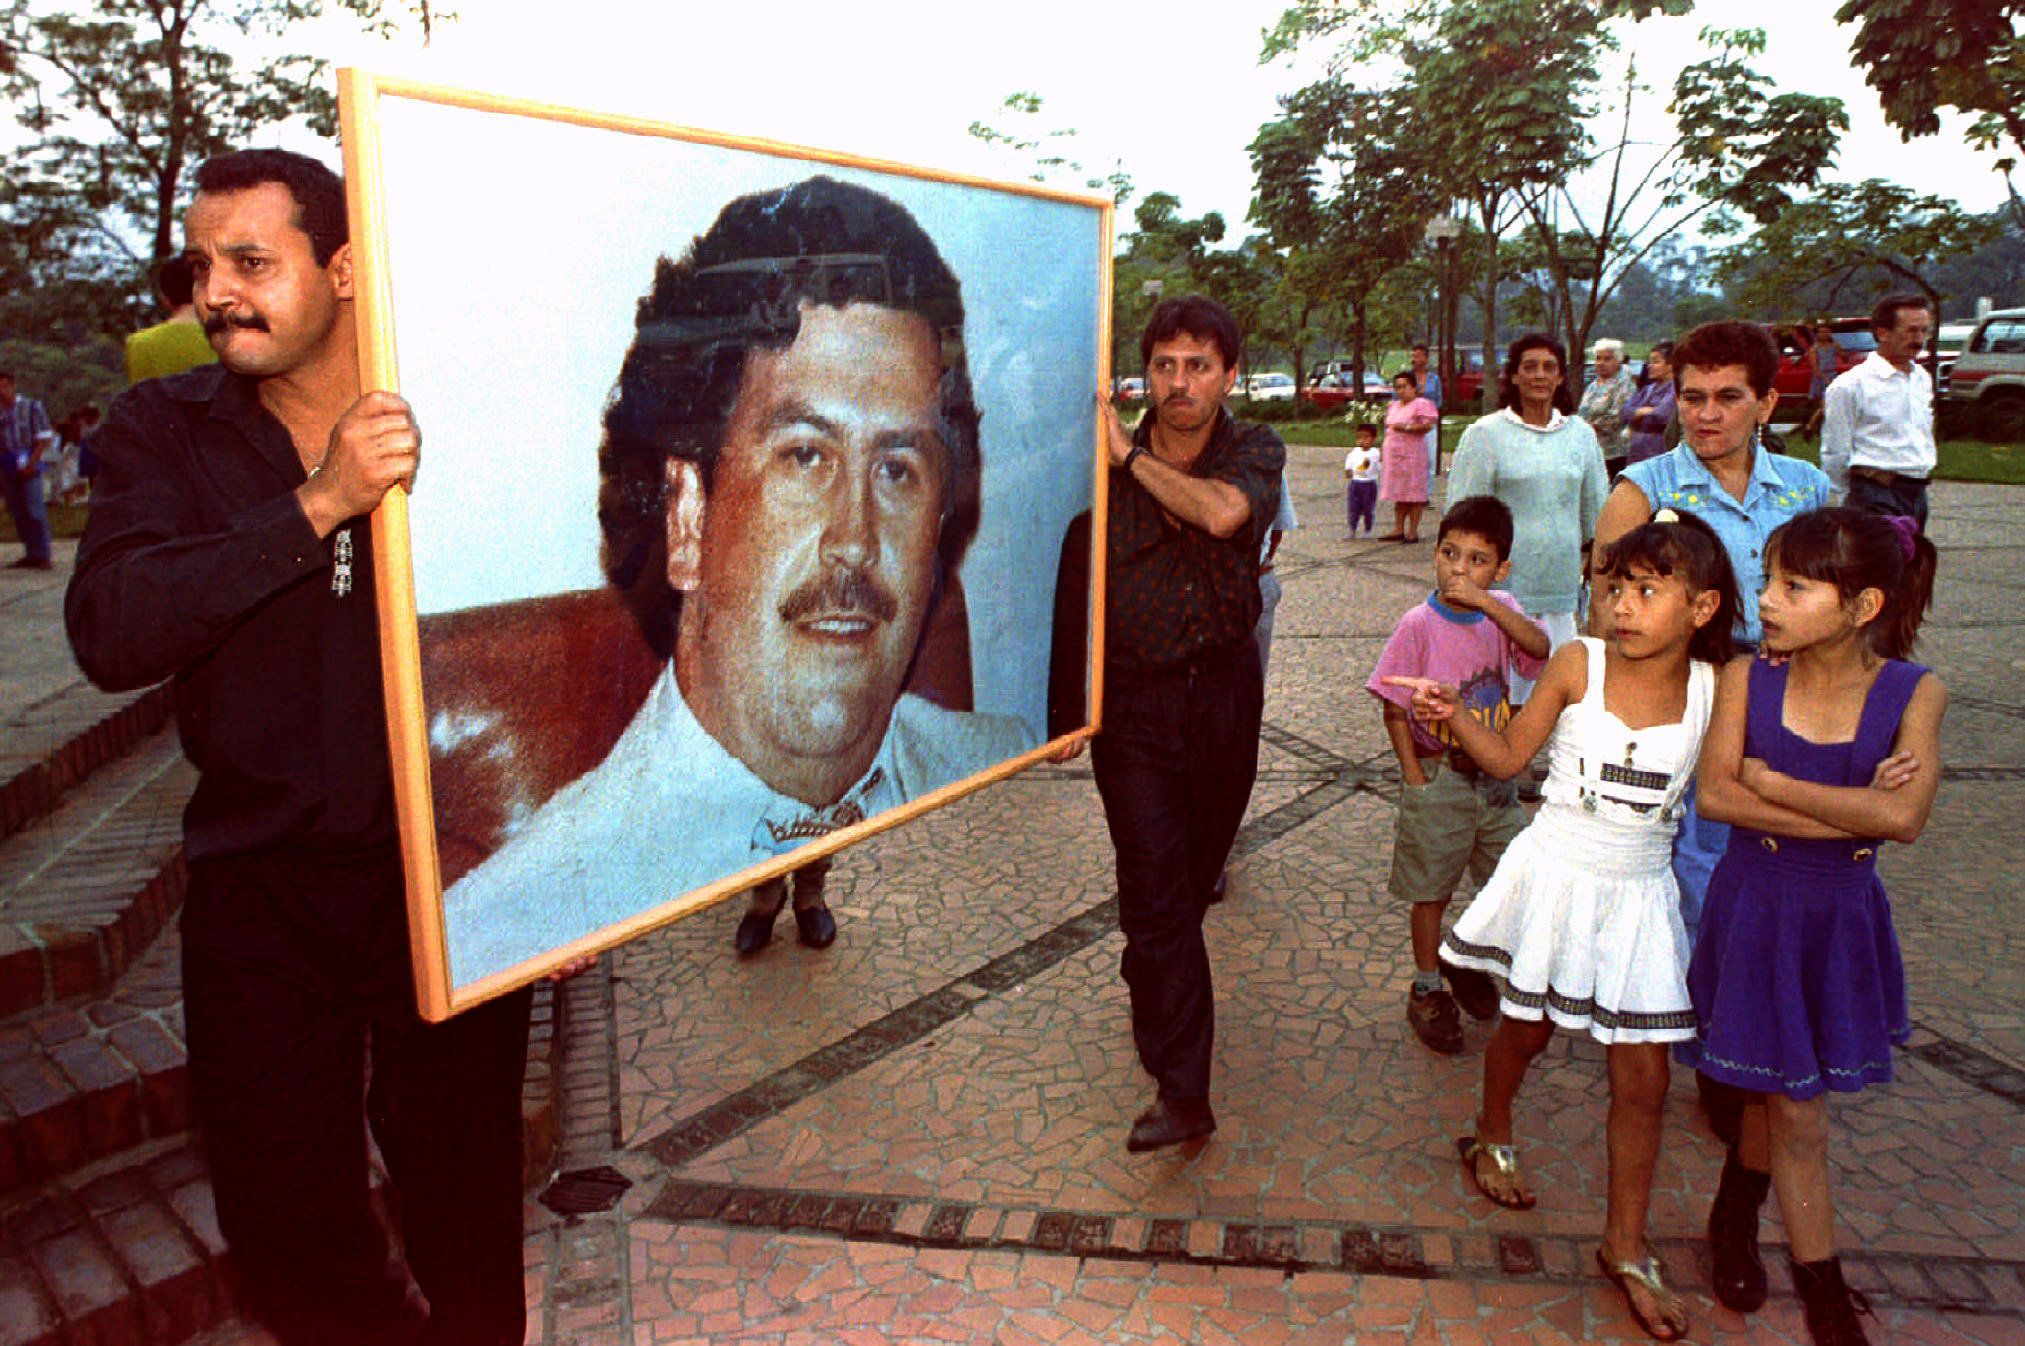 Men carry a picture of Pablo Escobar through the streets of Medellin Dec. 2, 1994 on the first anniversary of his death.